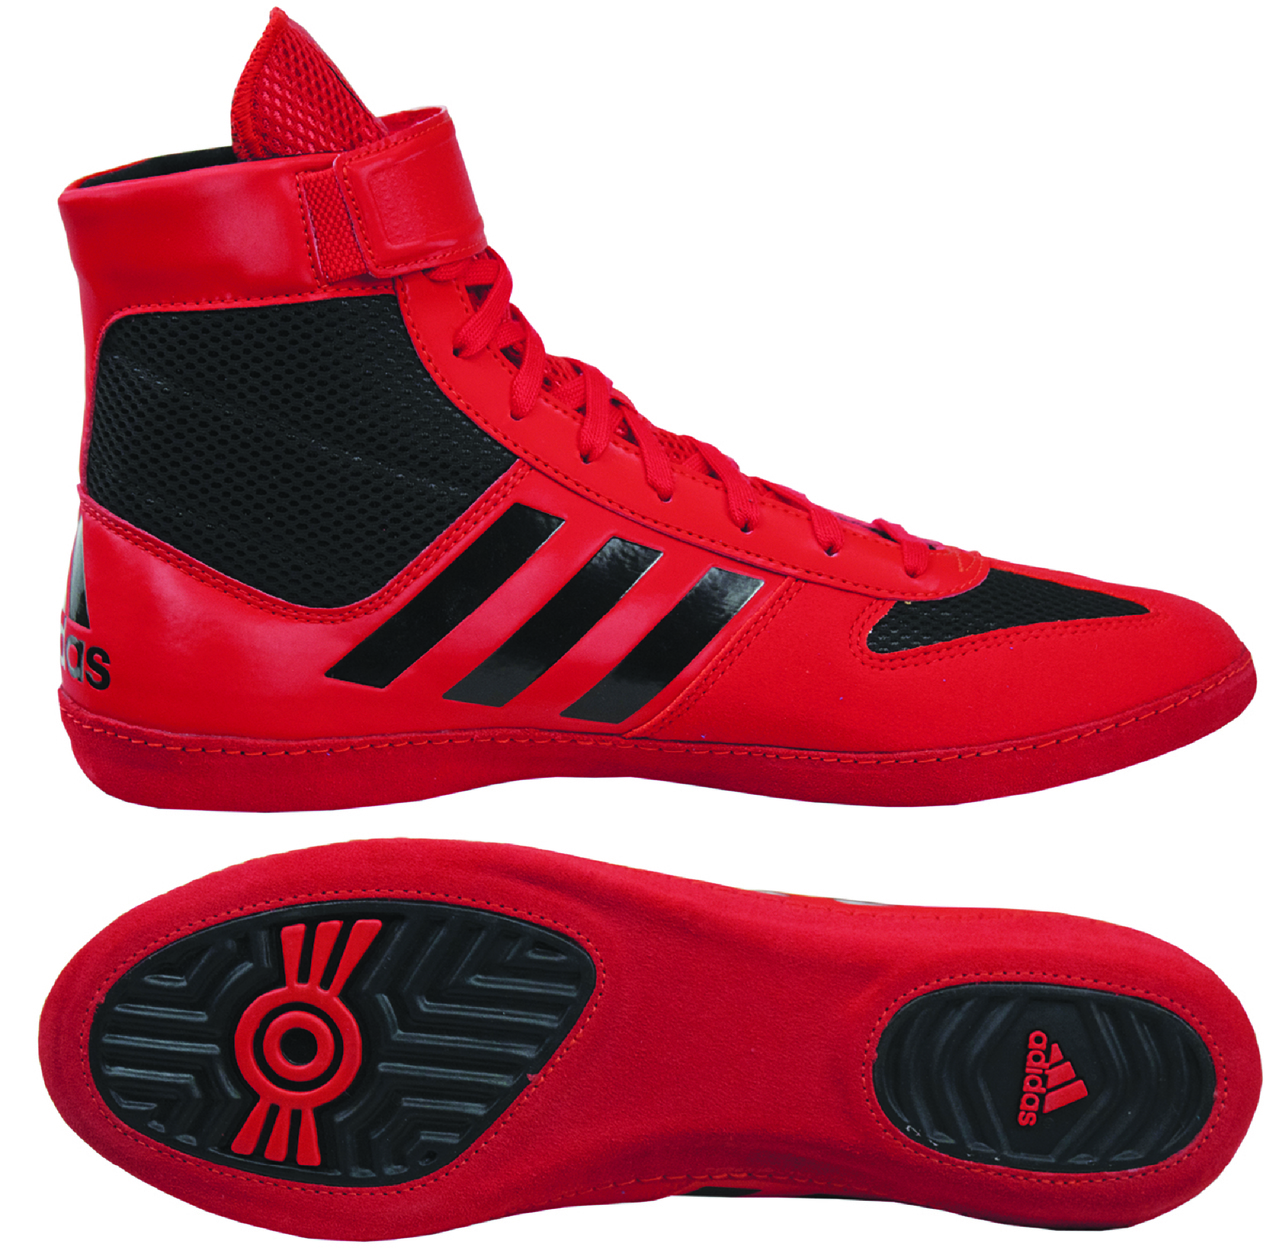 Adidas Combat Speed 5 Wrestling Shoes, color: Red/Black